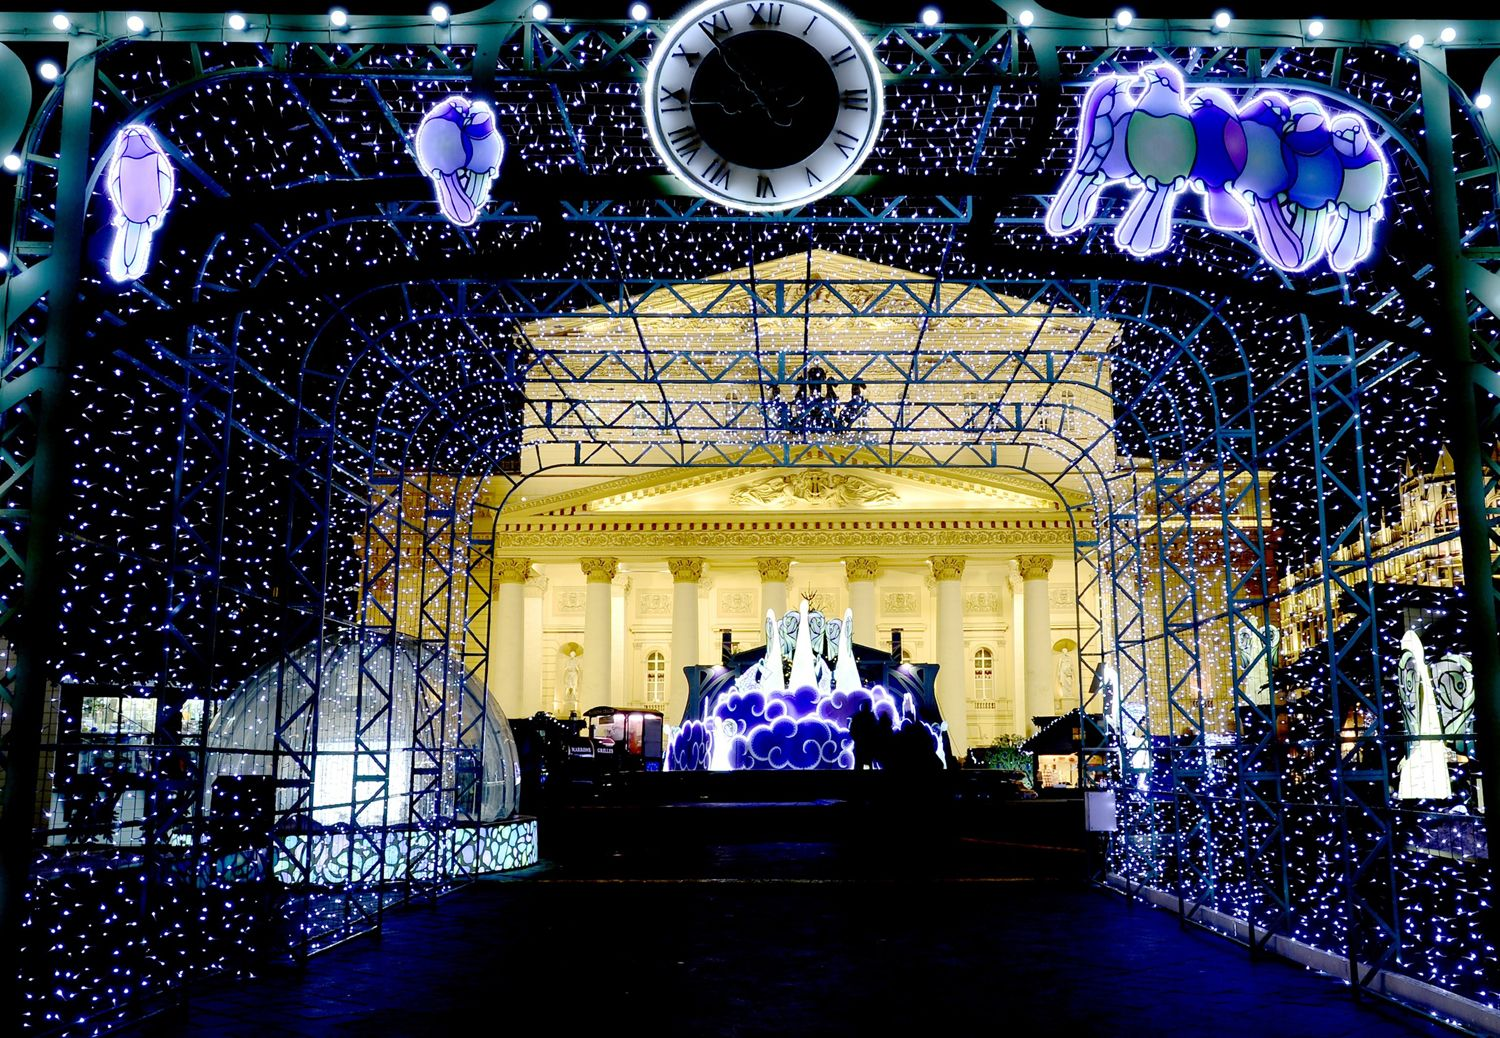 Streets are lit ahead of Orthodox Christmas celebrations in Moscow.   - HouseBeautiful.com